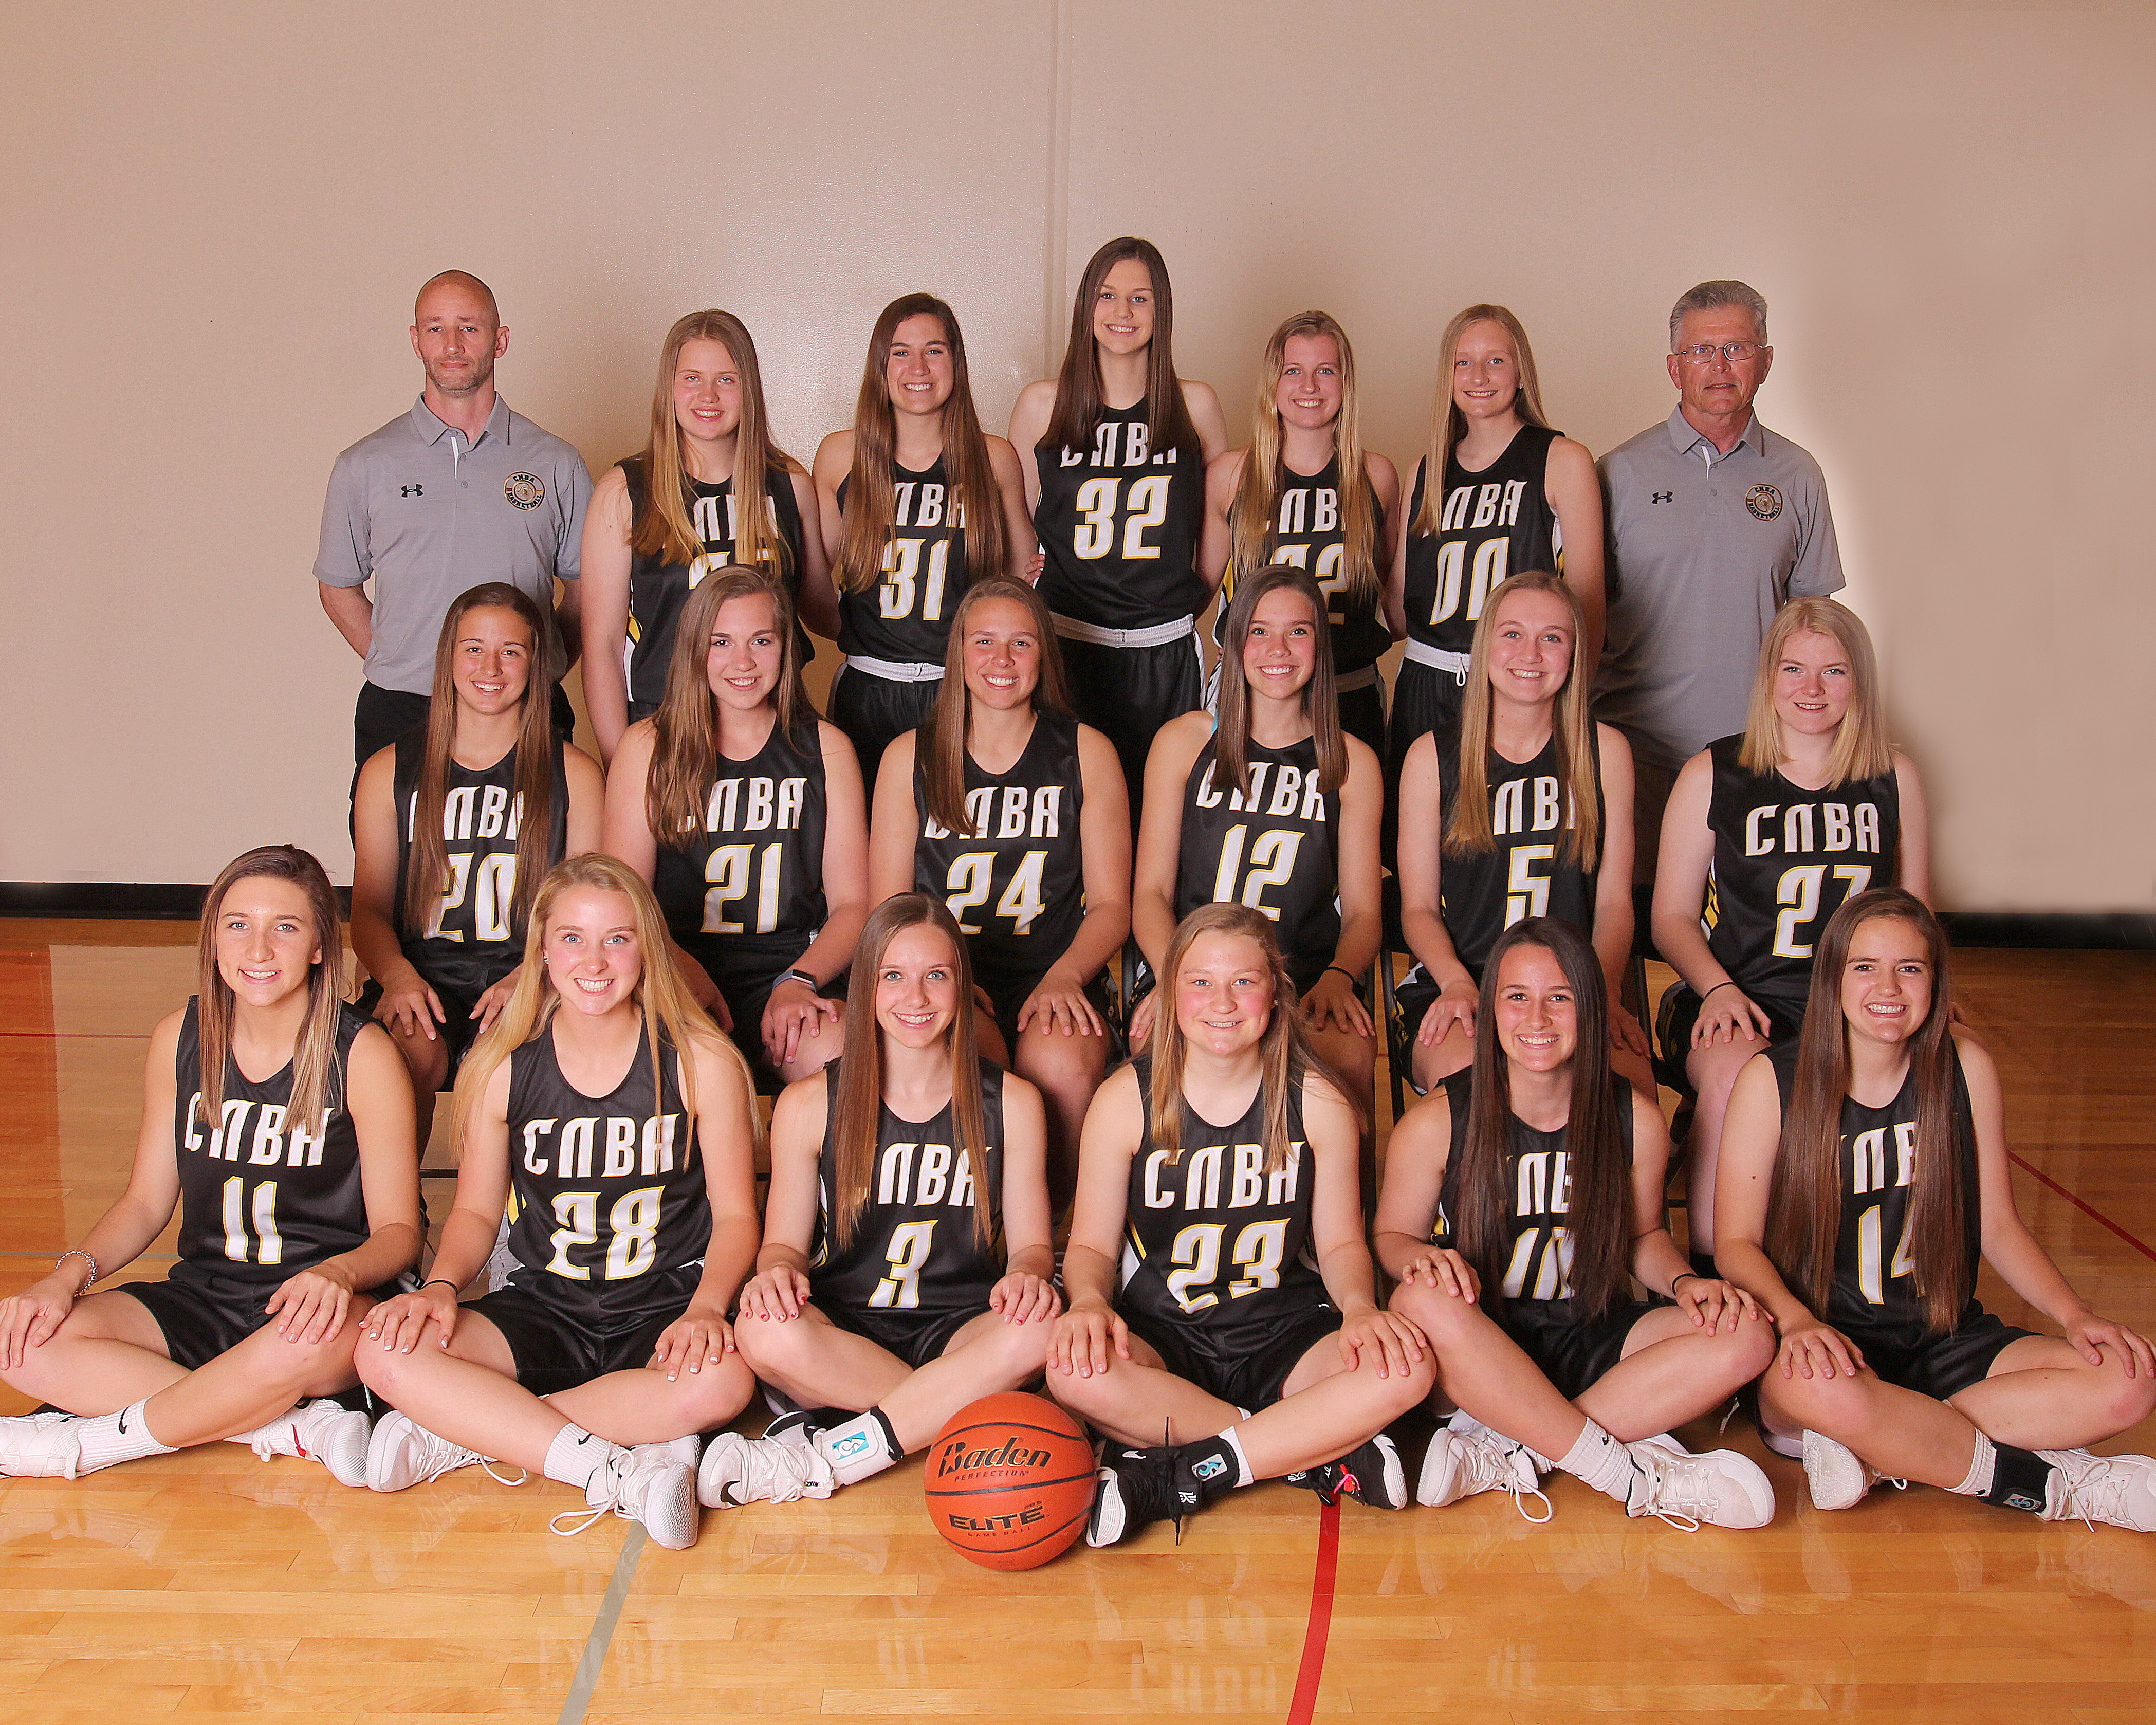 cnba49 (9-10 girls main)